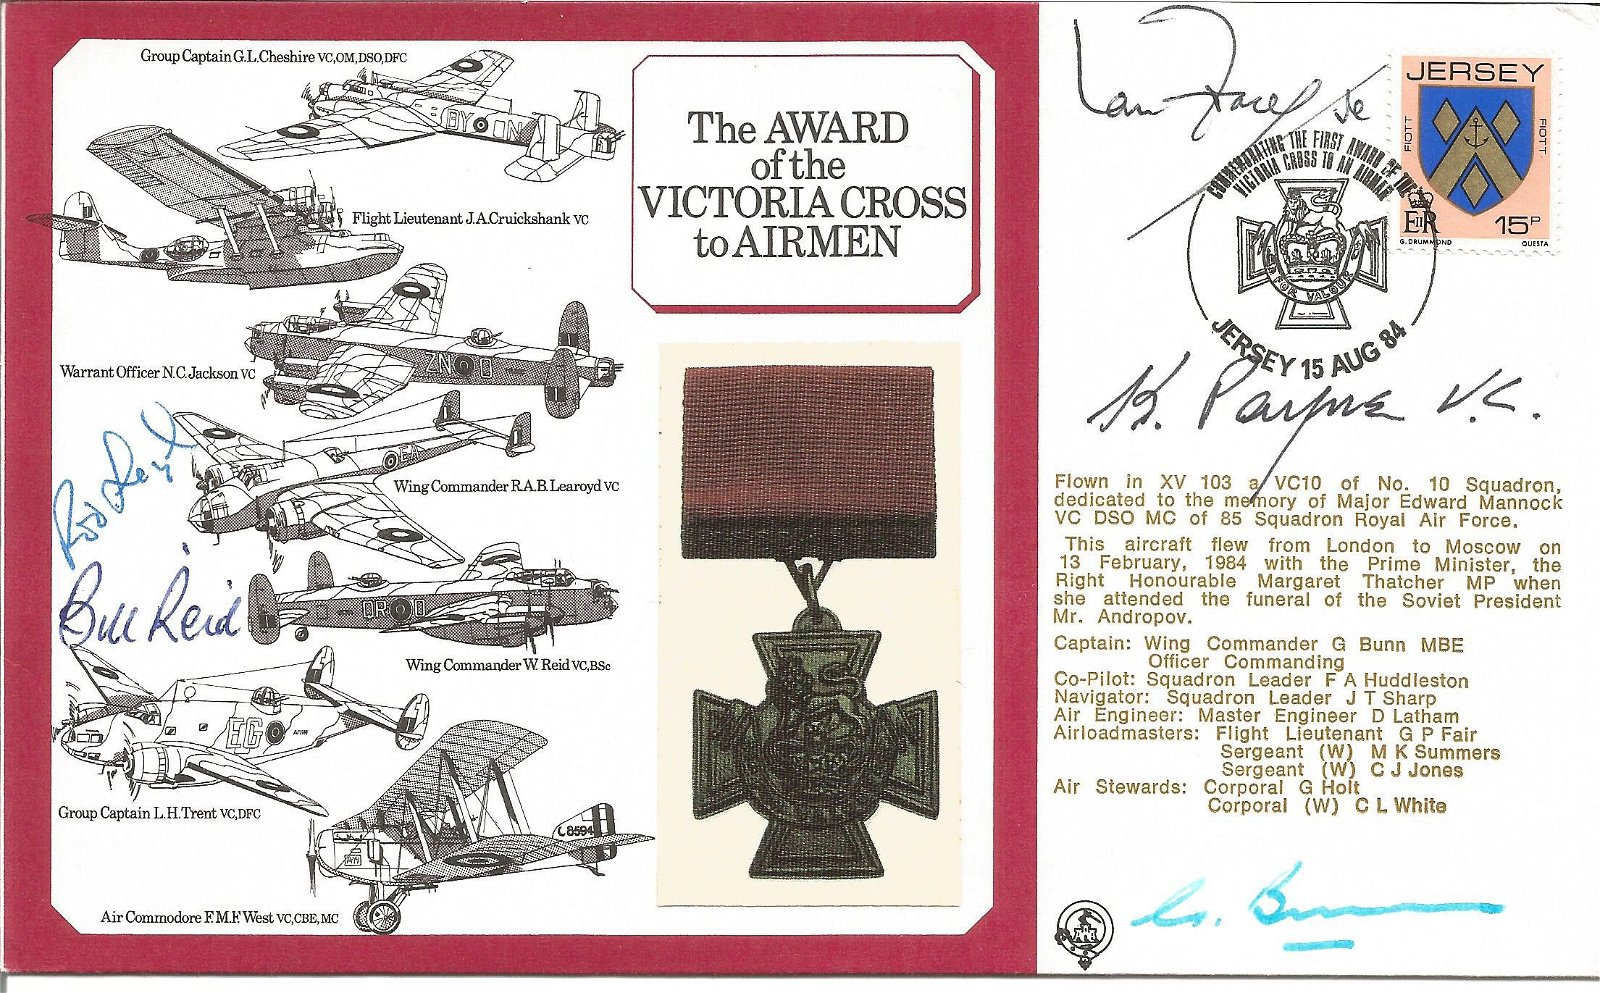 Keith Payne VC, Bill Reid VC and Rod Learoyd VC signed